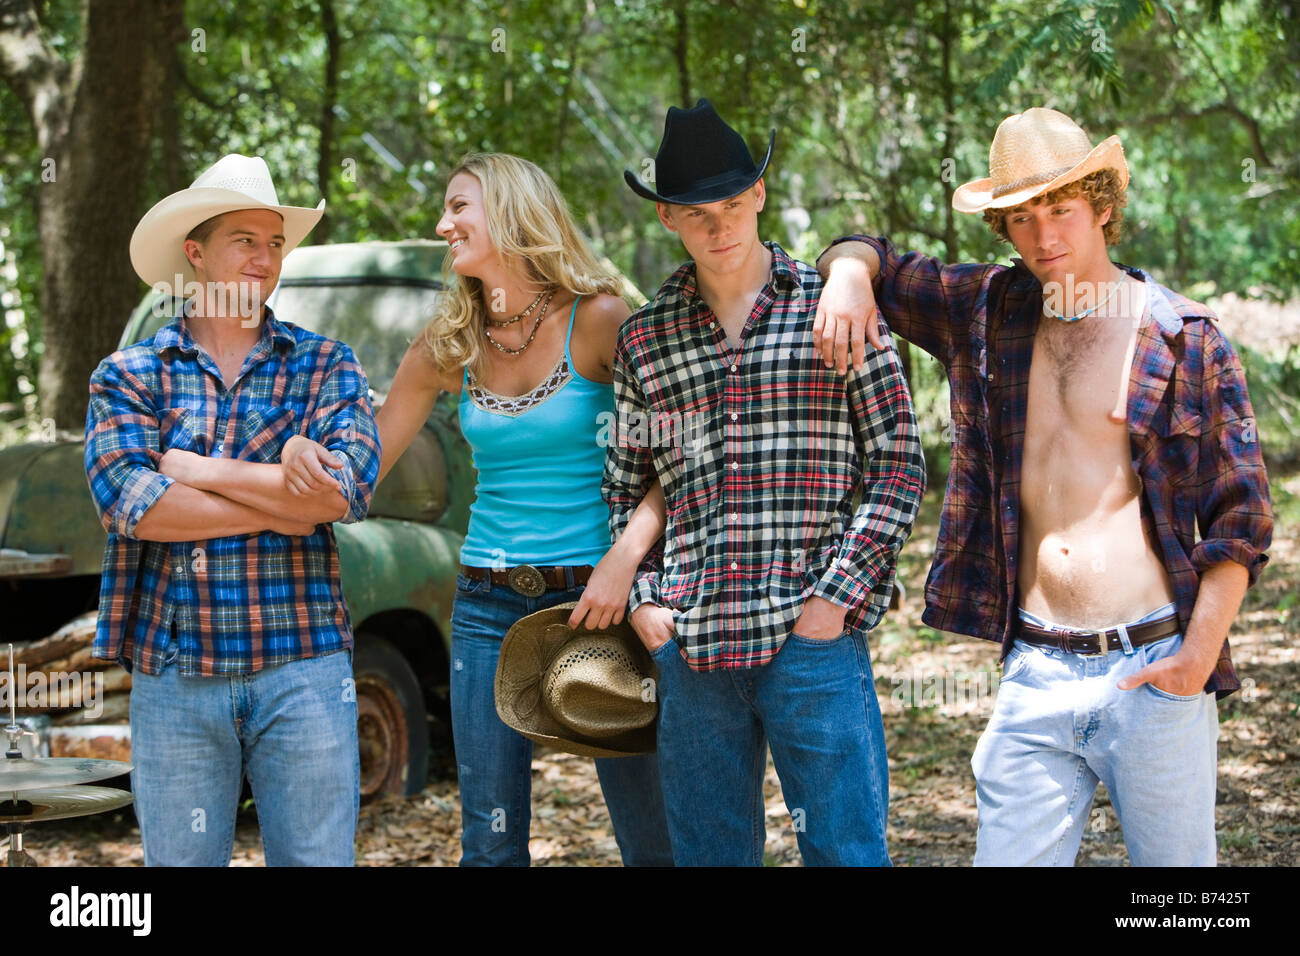 Young Men Wearing Cowboy Hats Chatting With Pretty Blonde